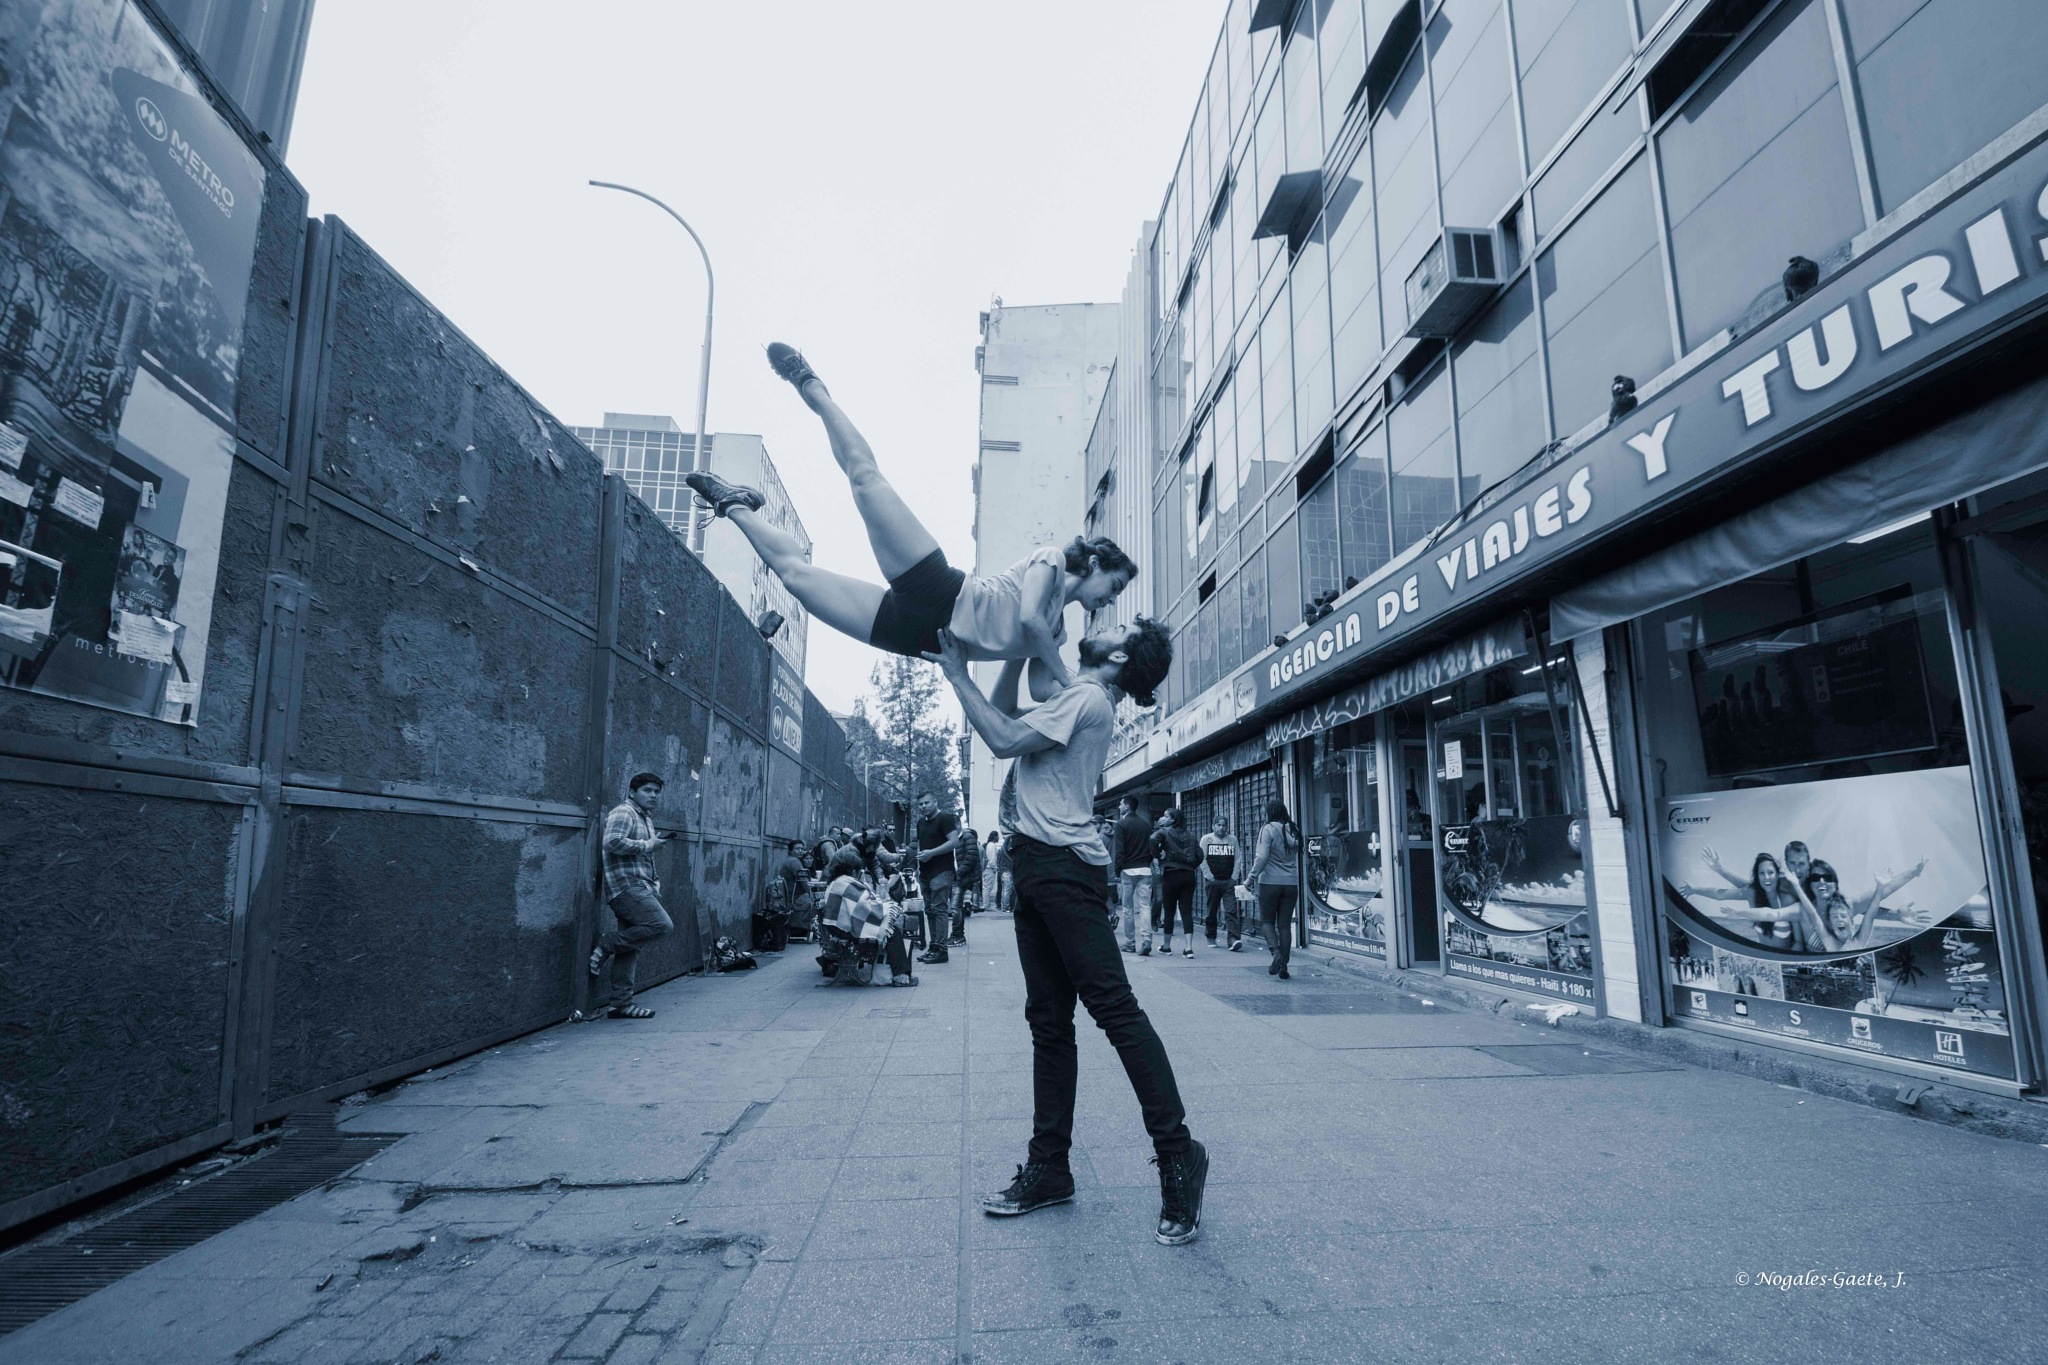 The art of dance in urban spaces (1) by Jorge Nogales